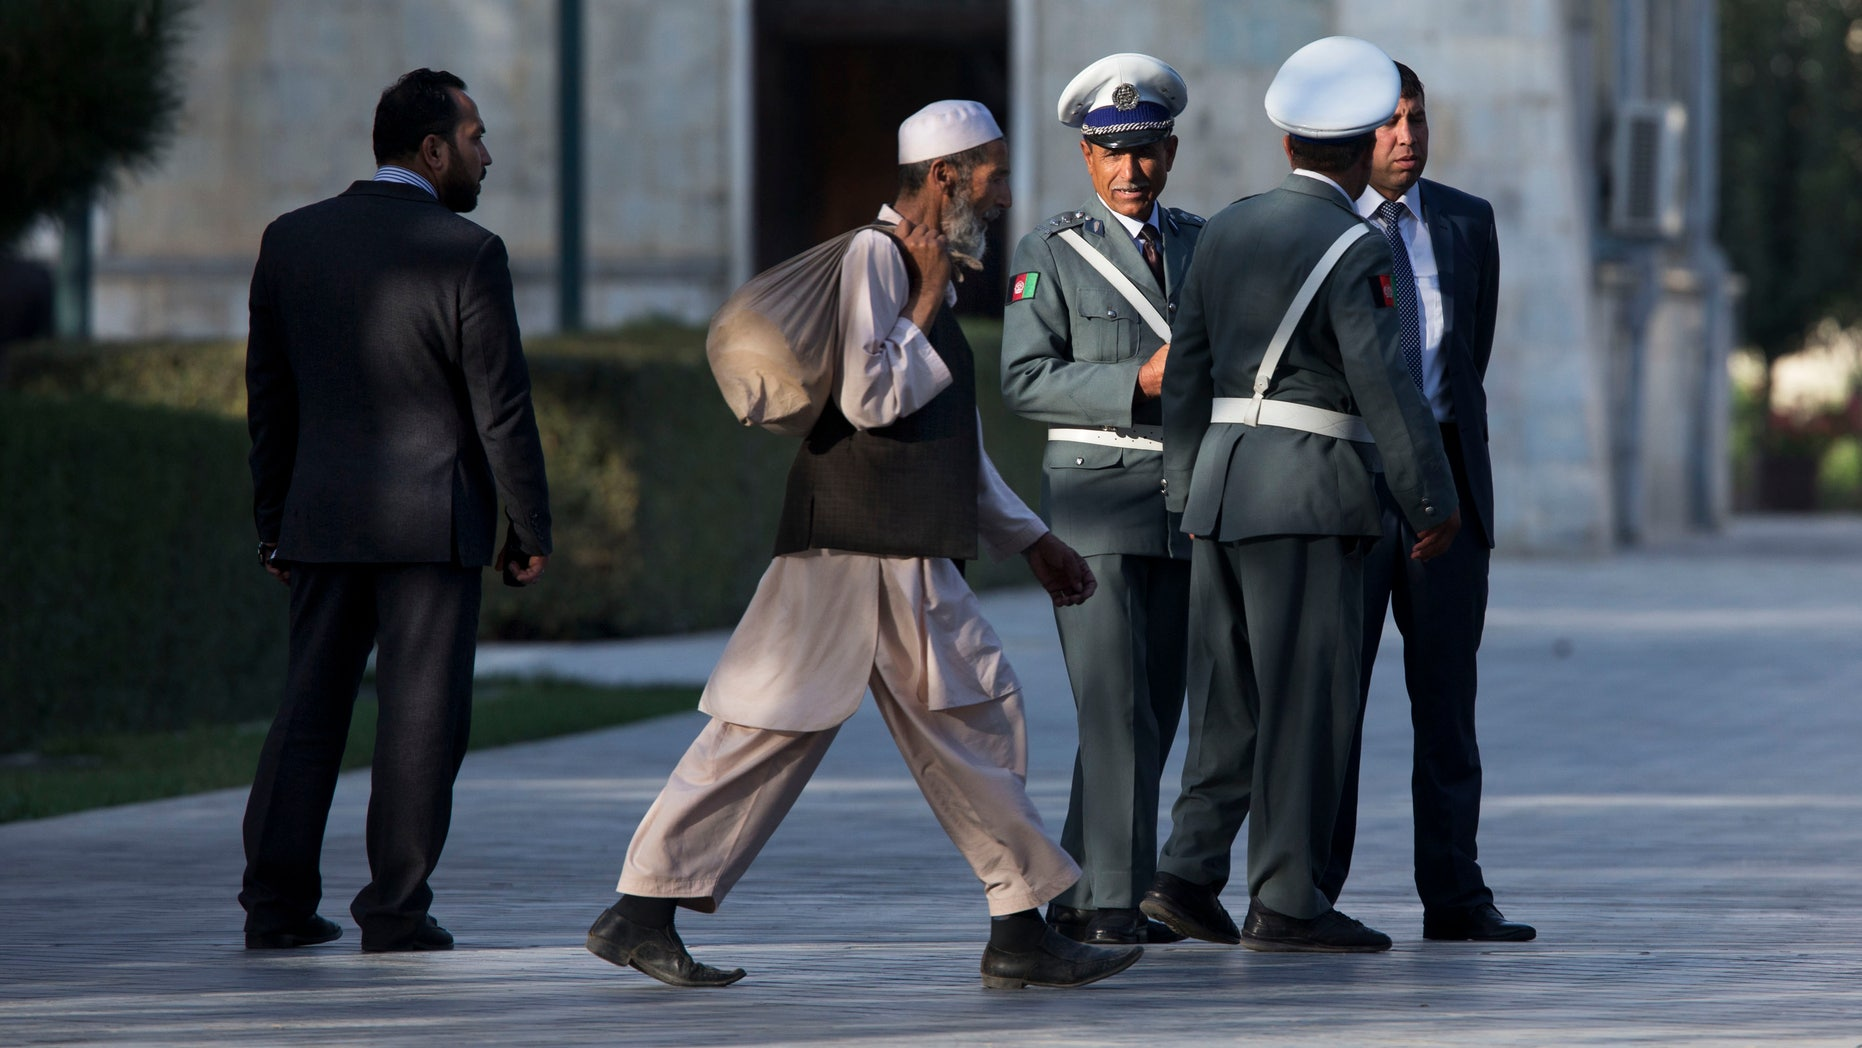 A worker walks past Afghan guards as they wait for a news conference that has been delayed between U.S. Secretary of State John Kerry and Afghan President Hamid Karzai at the presidential palace on the second day of an unannounced stop in Kabul, Afghanistan, on Saturday, Oct. 12, 2013. Kerry extended talks Saturday with Karzai on a bilateral security agreement with the United States, and while work remains to be done a deal could be struck by the end of the day, a presidential spokesman said.  (AP Photo/Jacquelyn Martin, Pool)